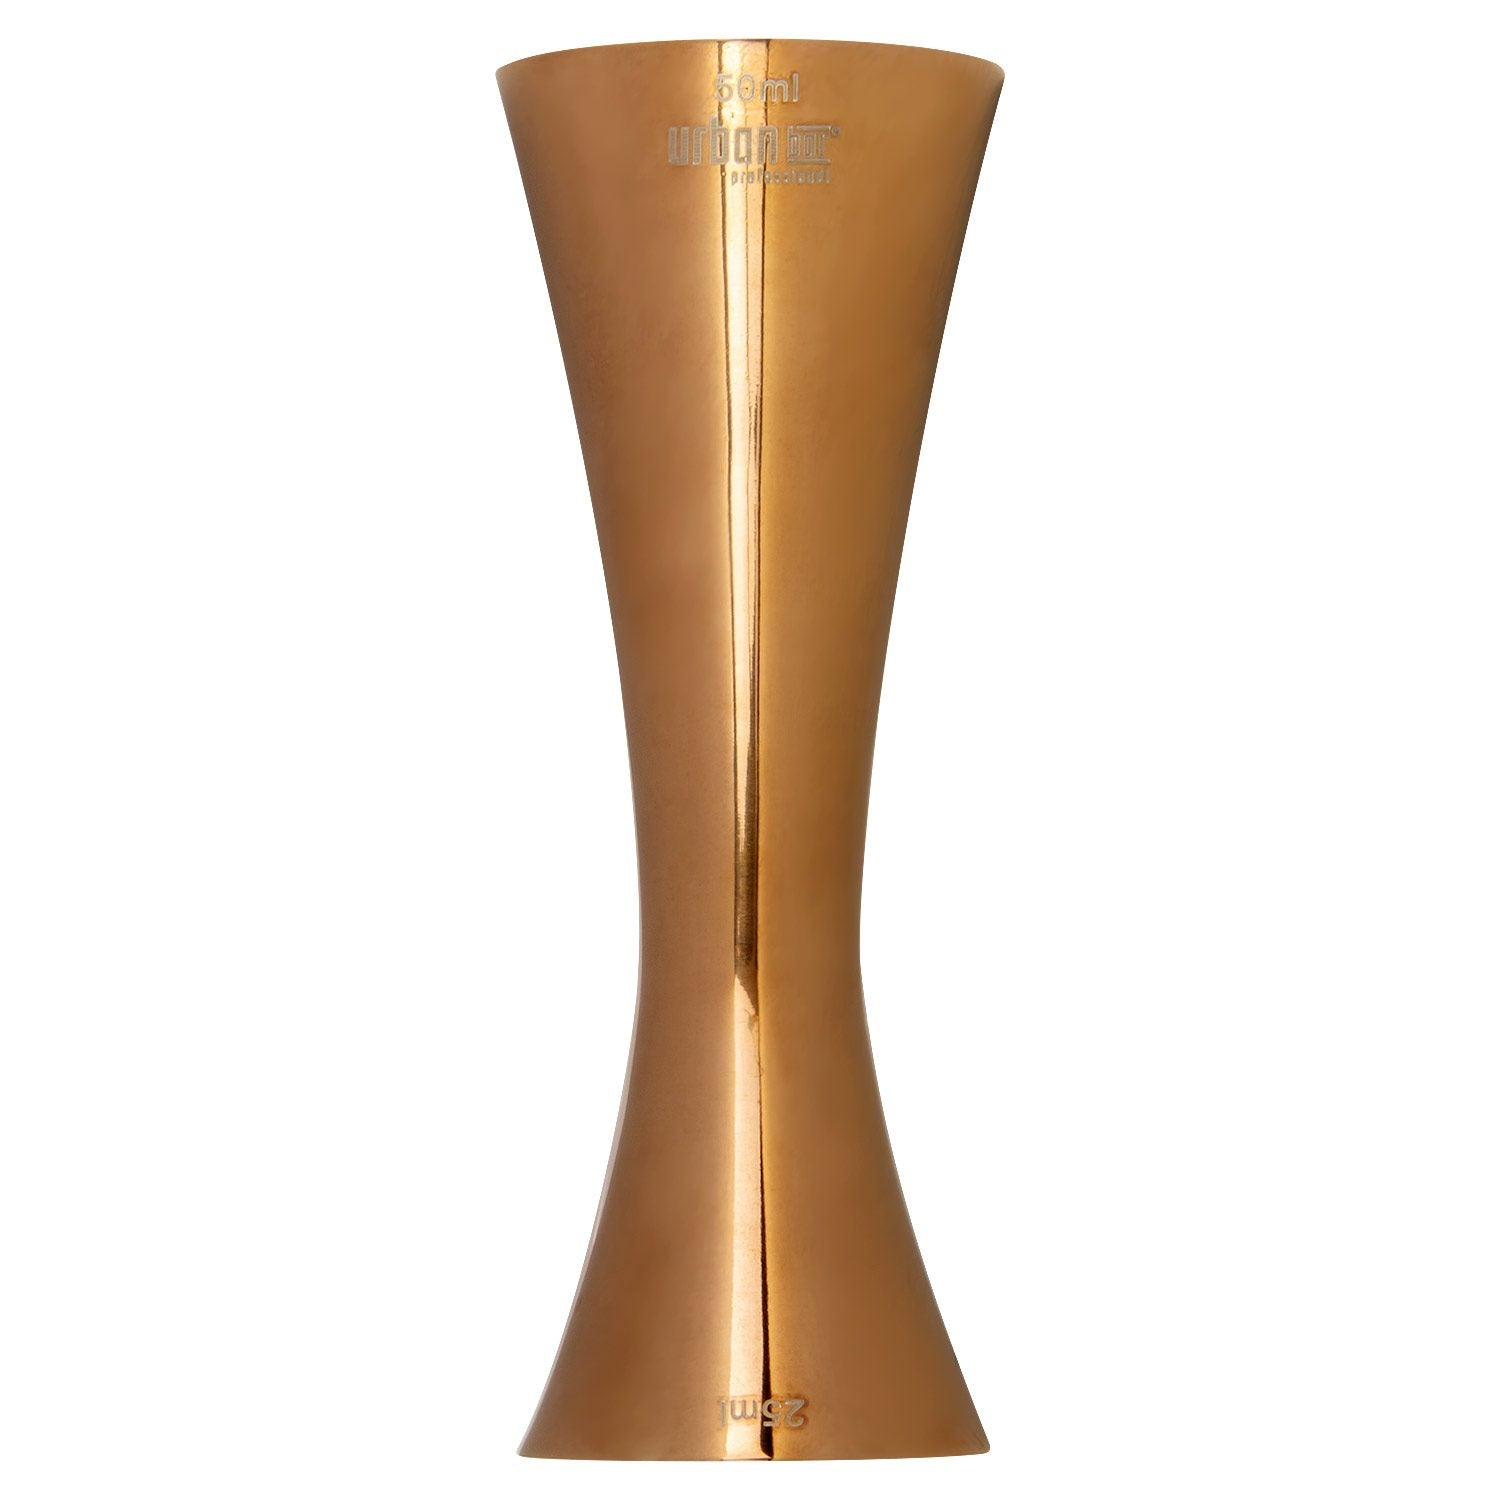 Aero® Rose Gold Jigger 25ml/50ml